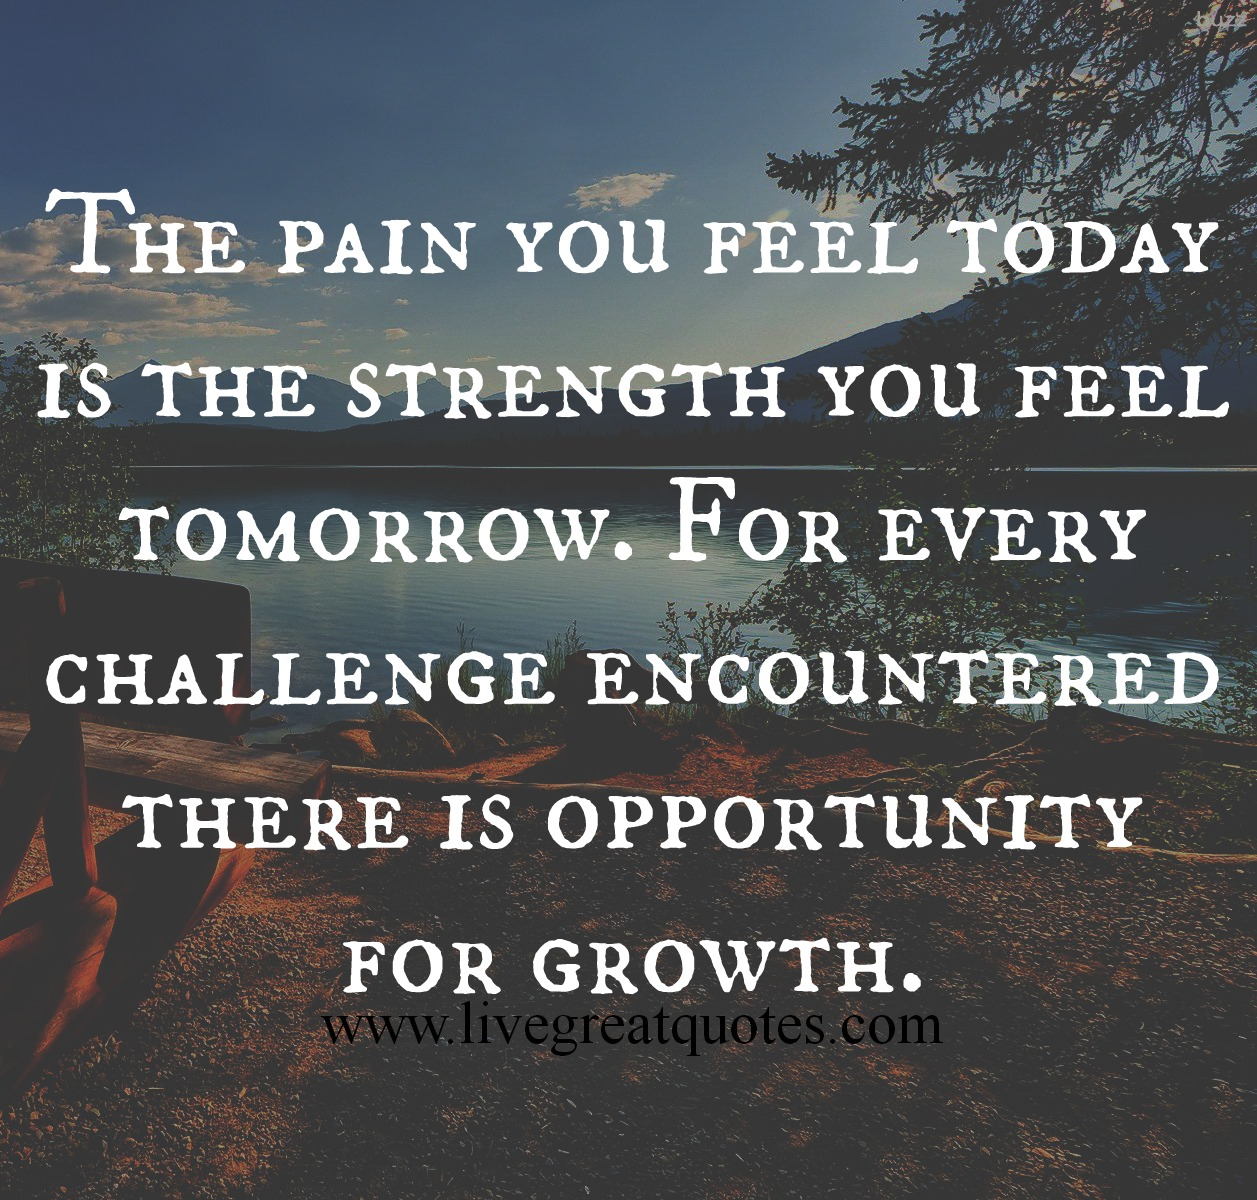 Pain And Life Quotes: Pains Quotes. QuotesGram